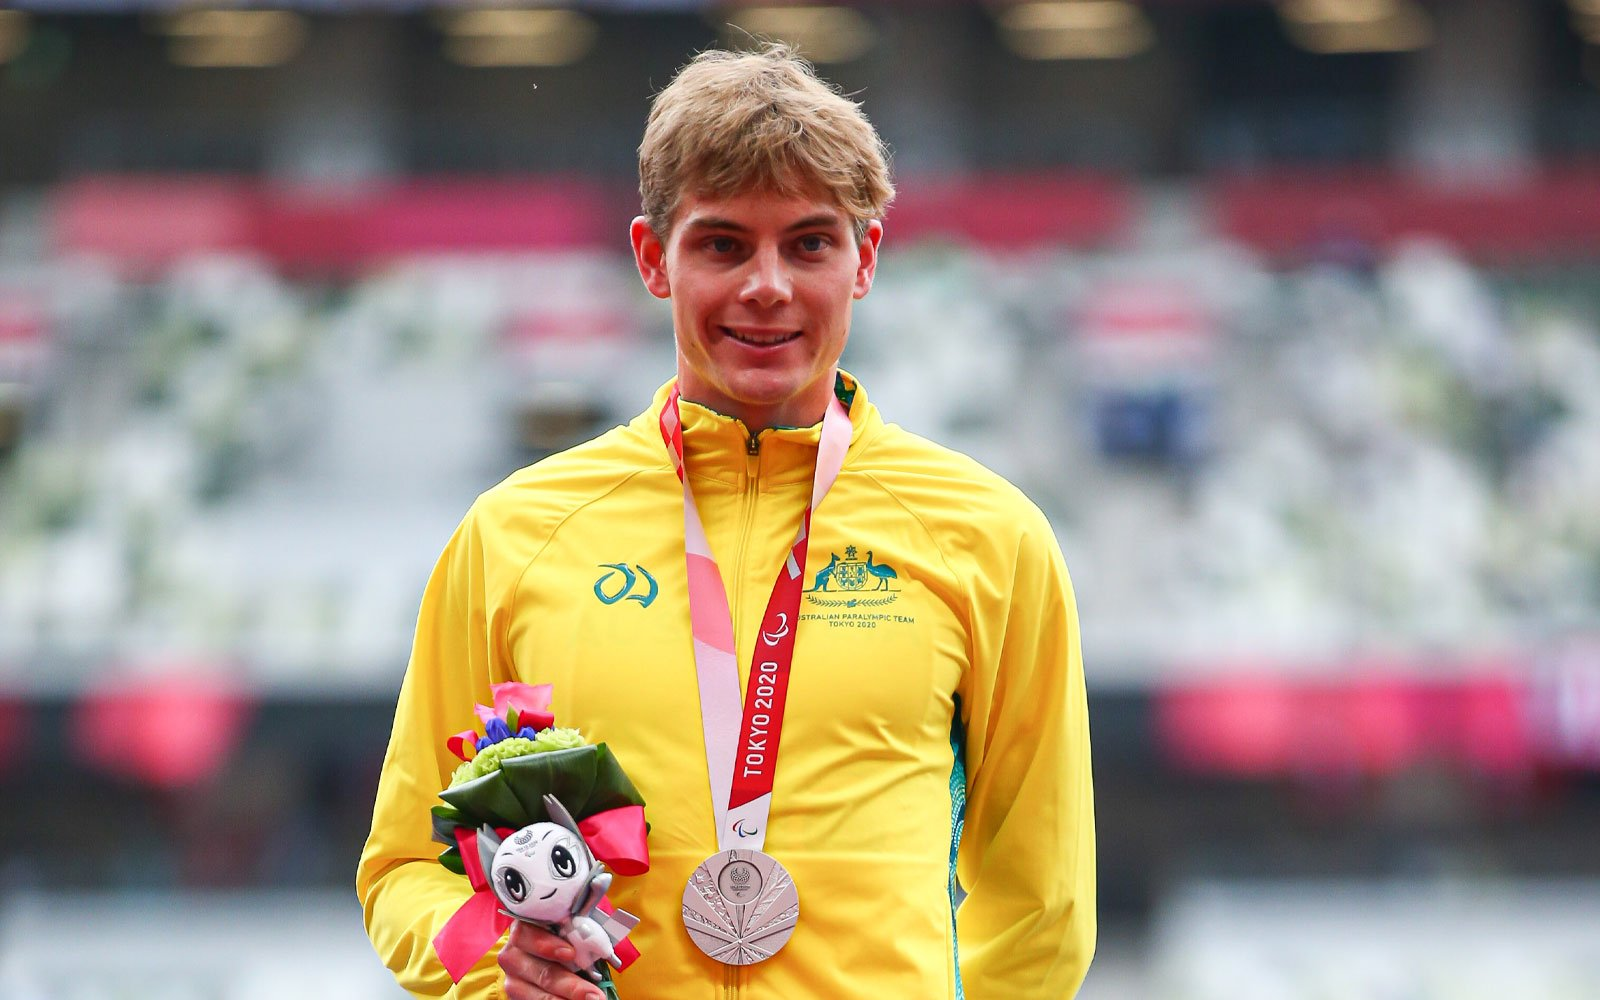 Three more medals added to Australia's track and field haul